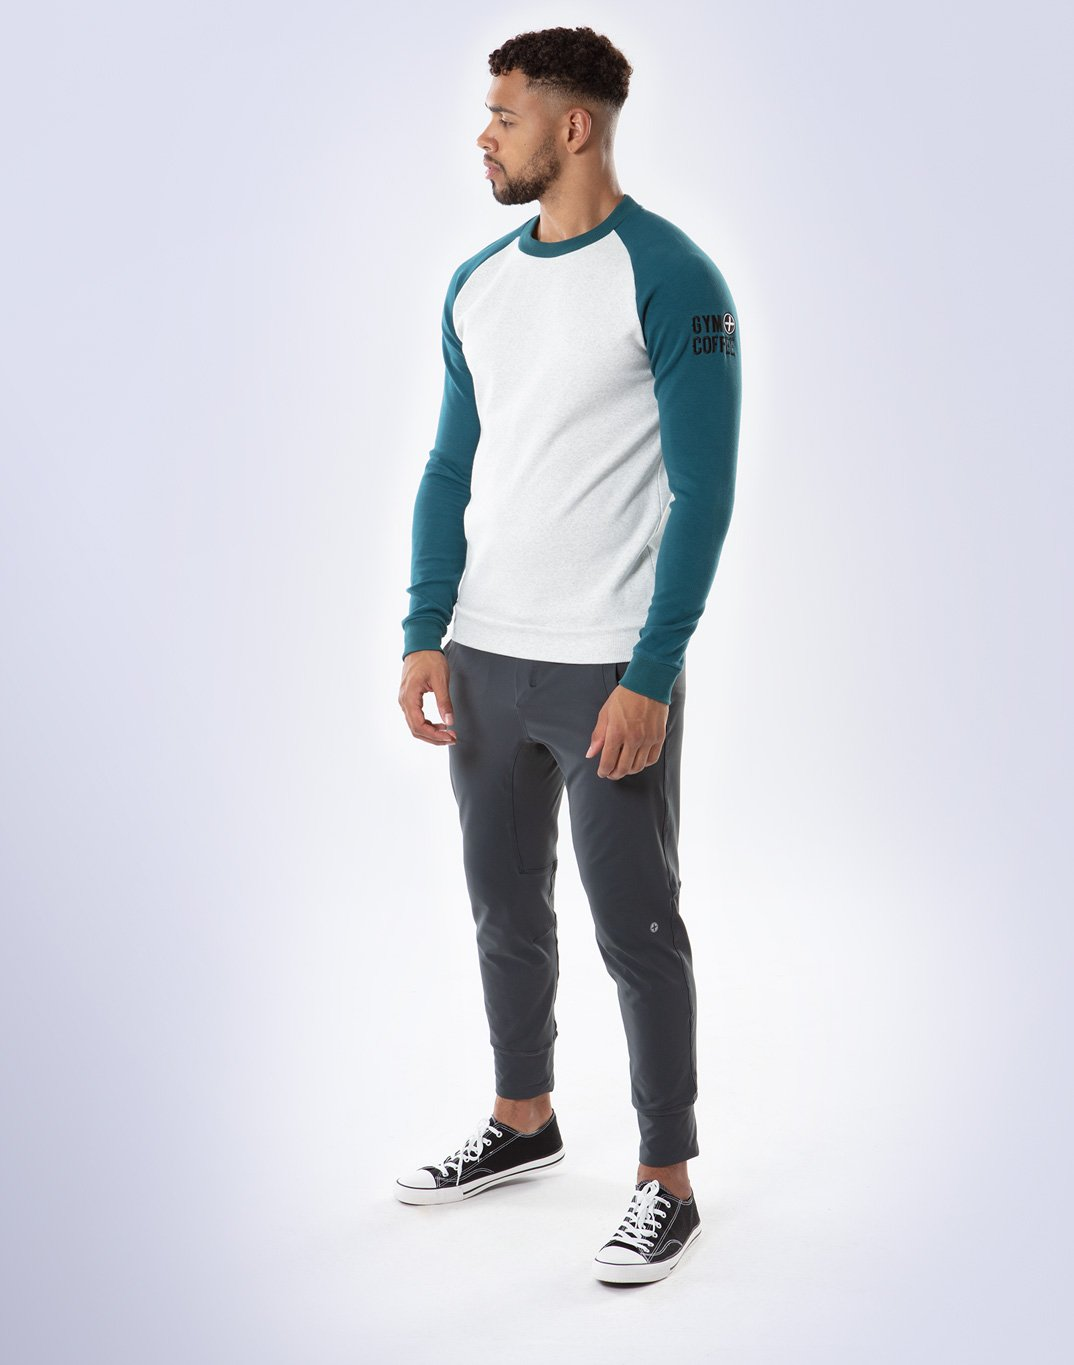 Gym Plus Coffee Long Sleeve Raglan 2Tone UniCrew in Cream/Teal Designed in Ireland